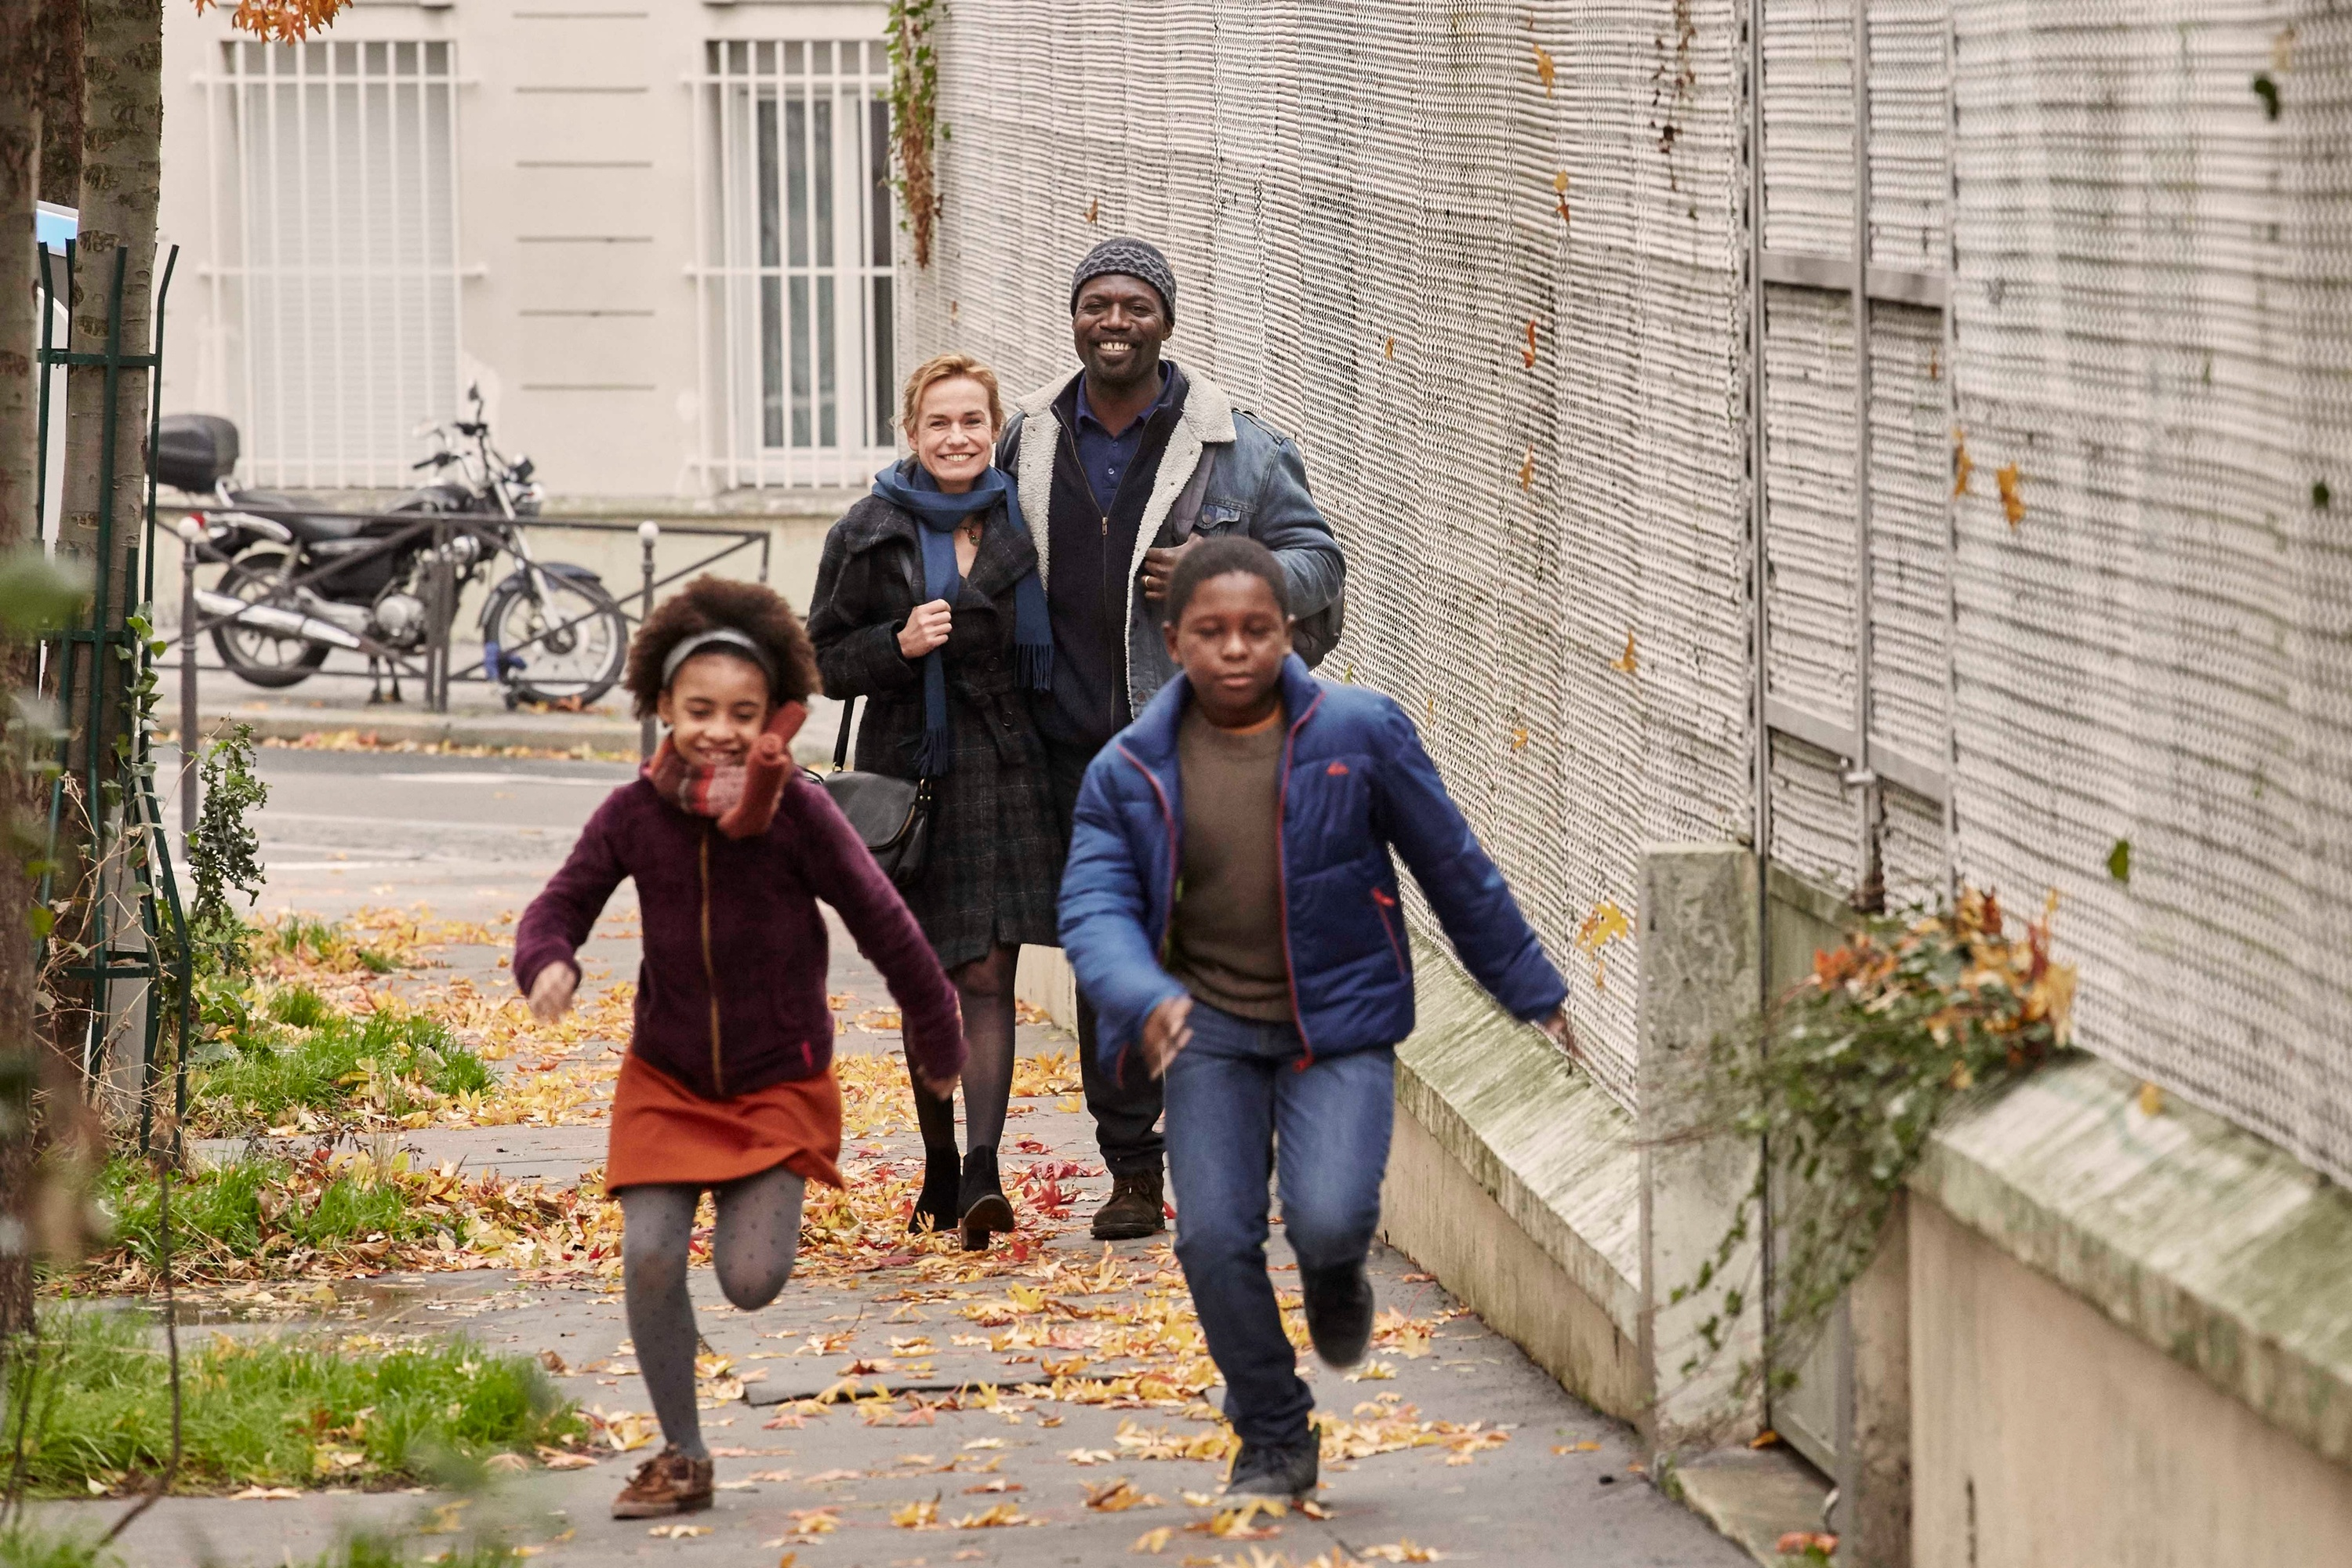 A Season in France (2019), directed by Mahamat-Saleh Haroun | Film review